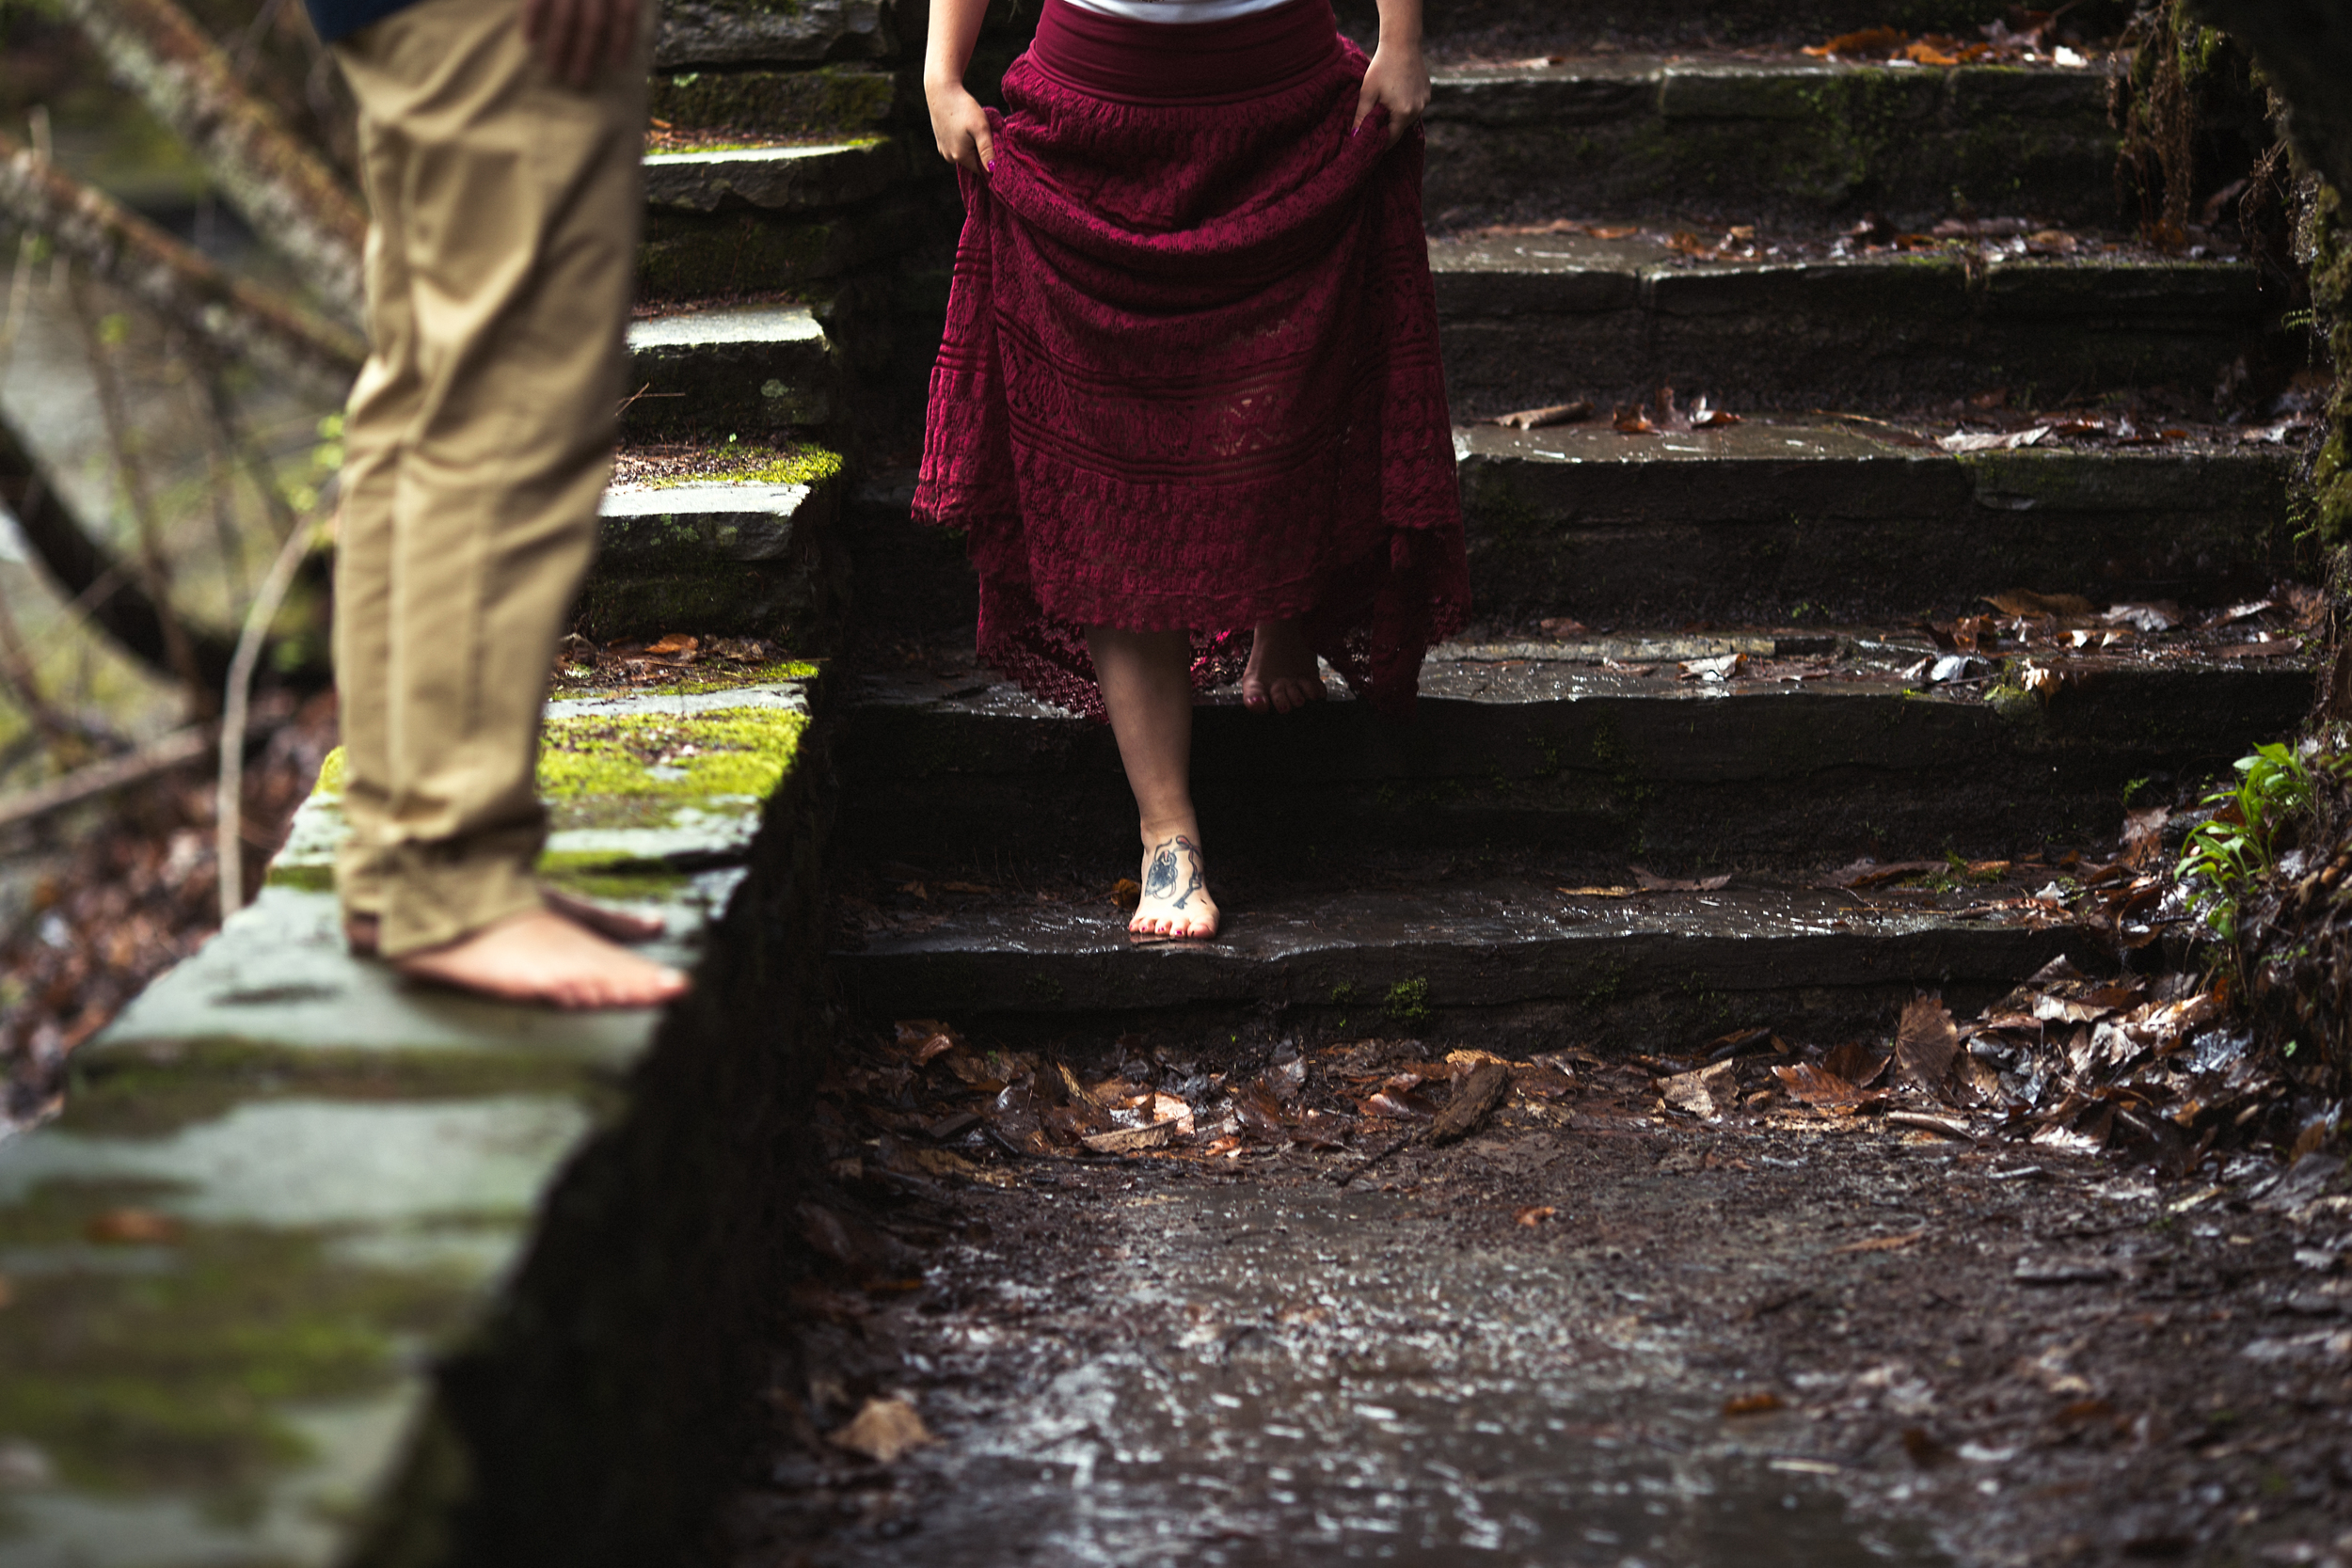 A_J_Engagement_Session_Waterfall_Nick_Natasha_Photography-11.jpg